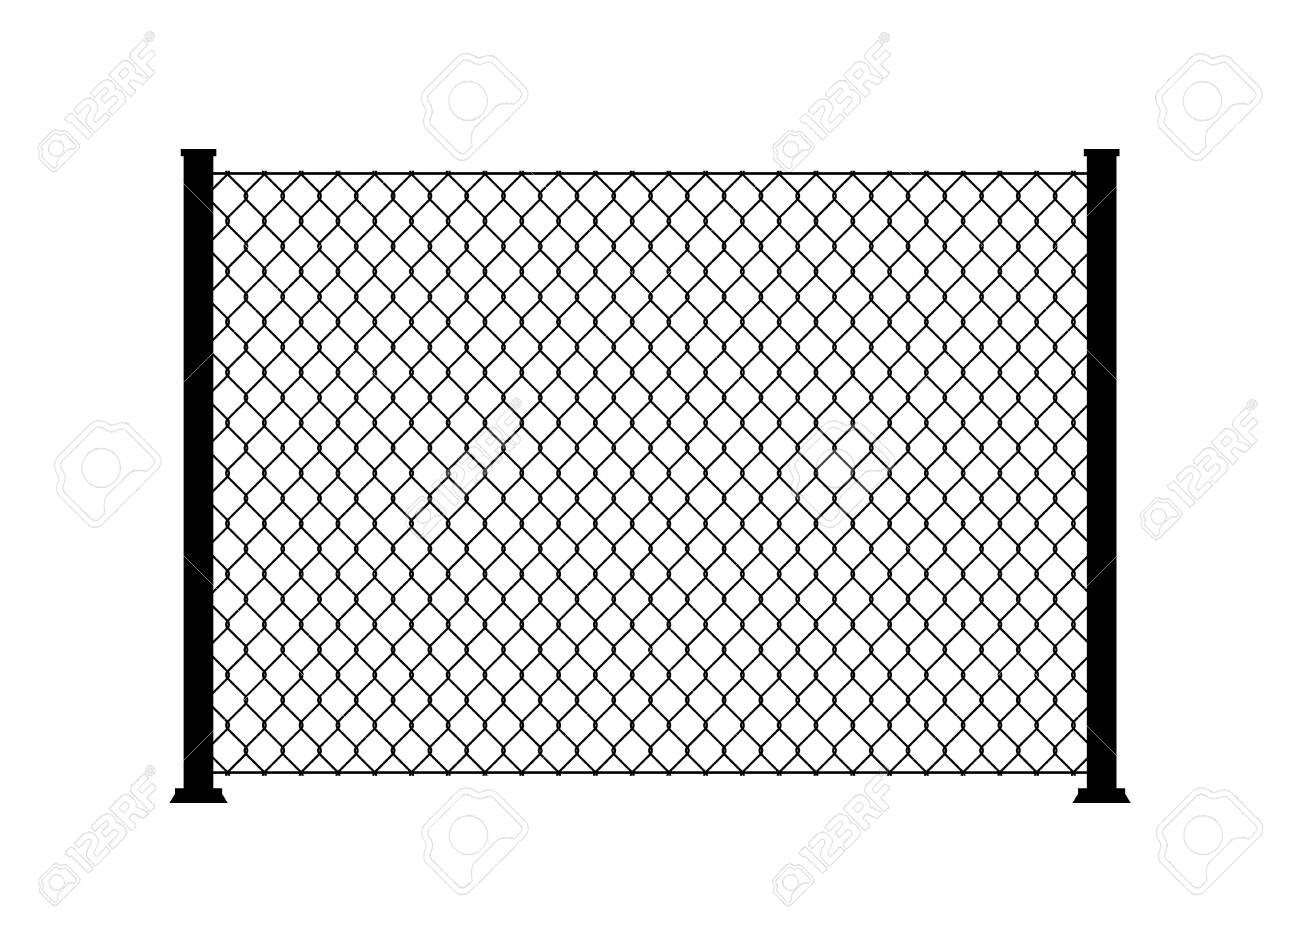 Fence wire metal chain link. Mesh steel net texture fence cage grid wall. - 133432970